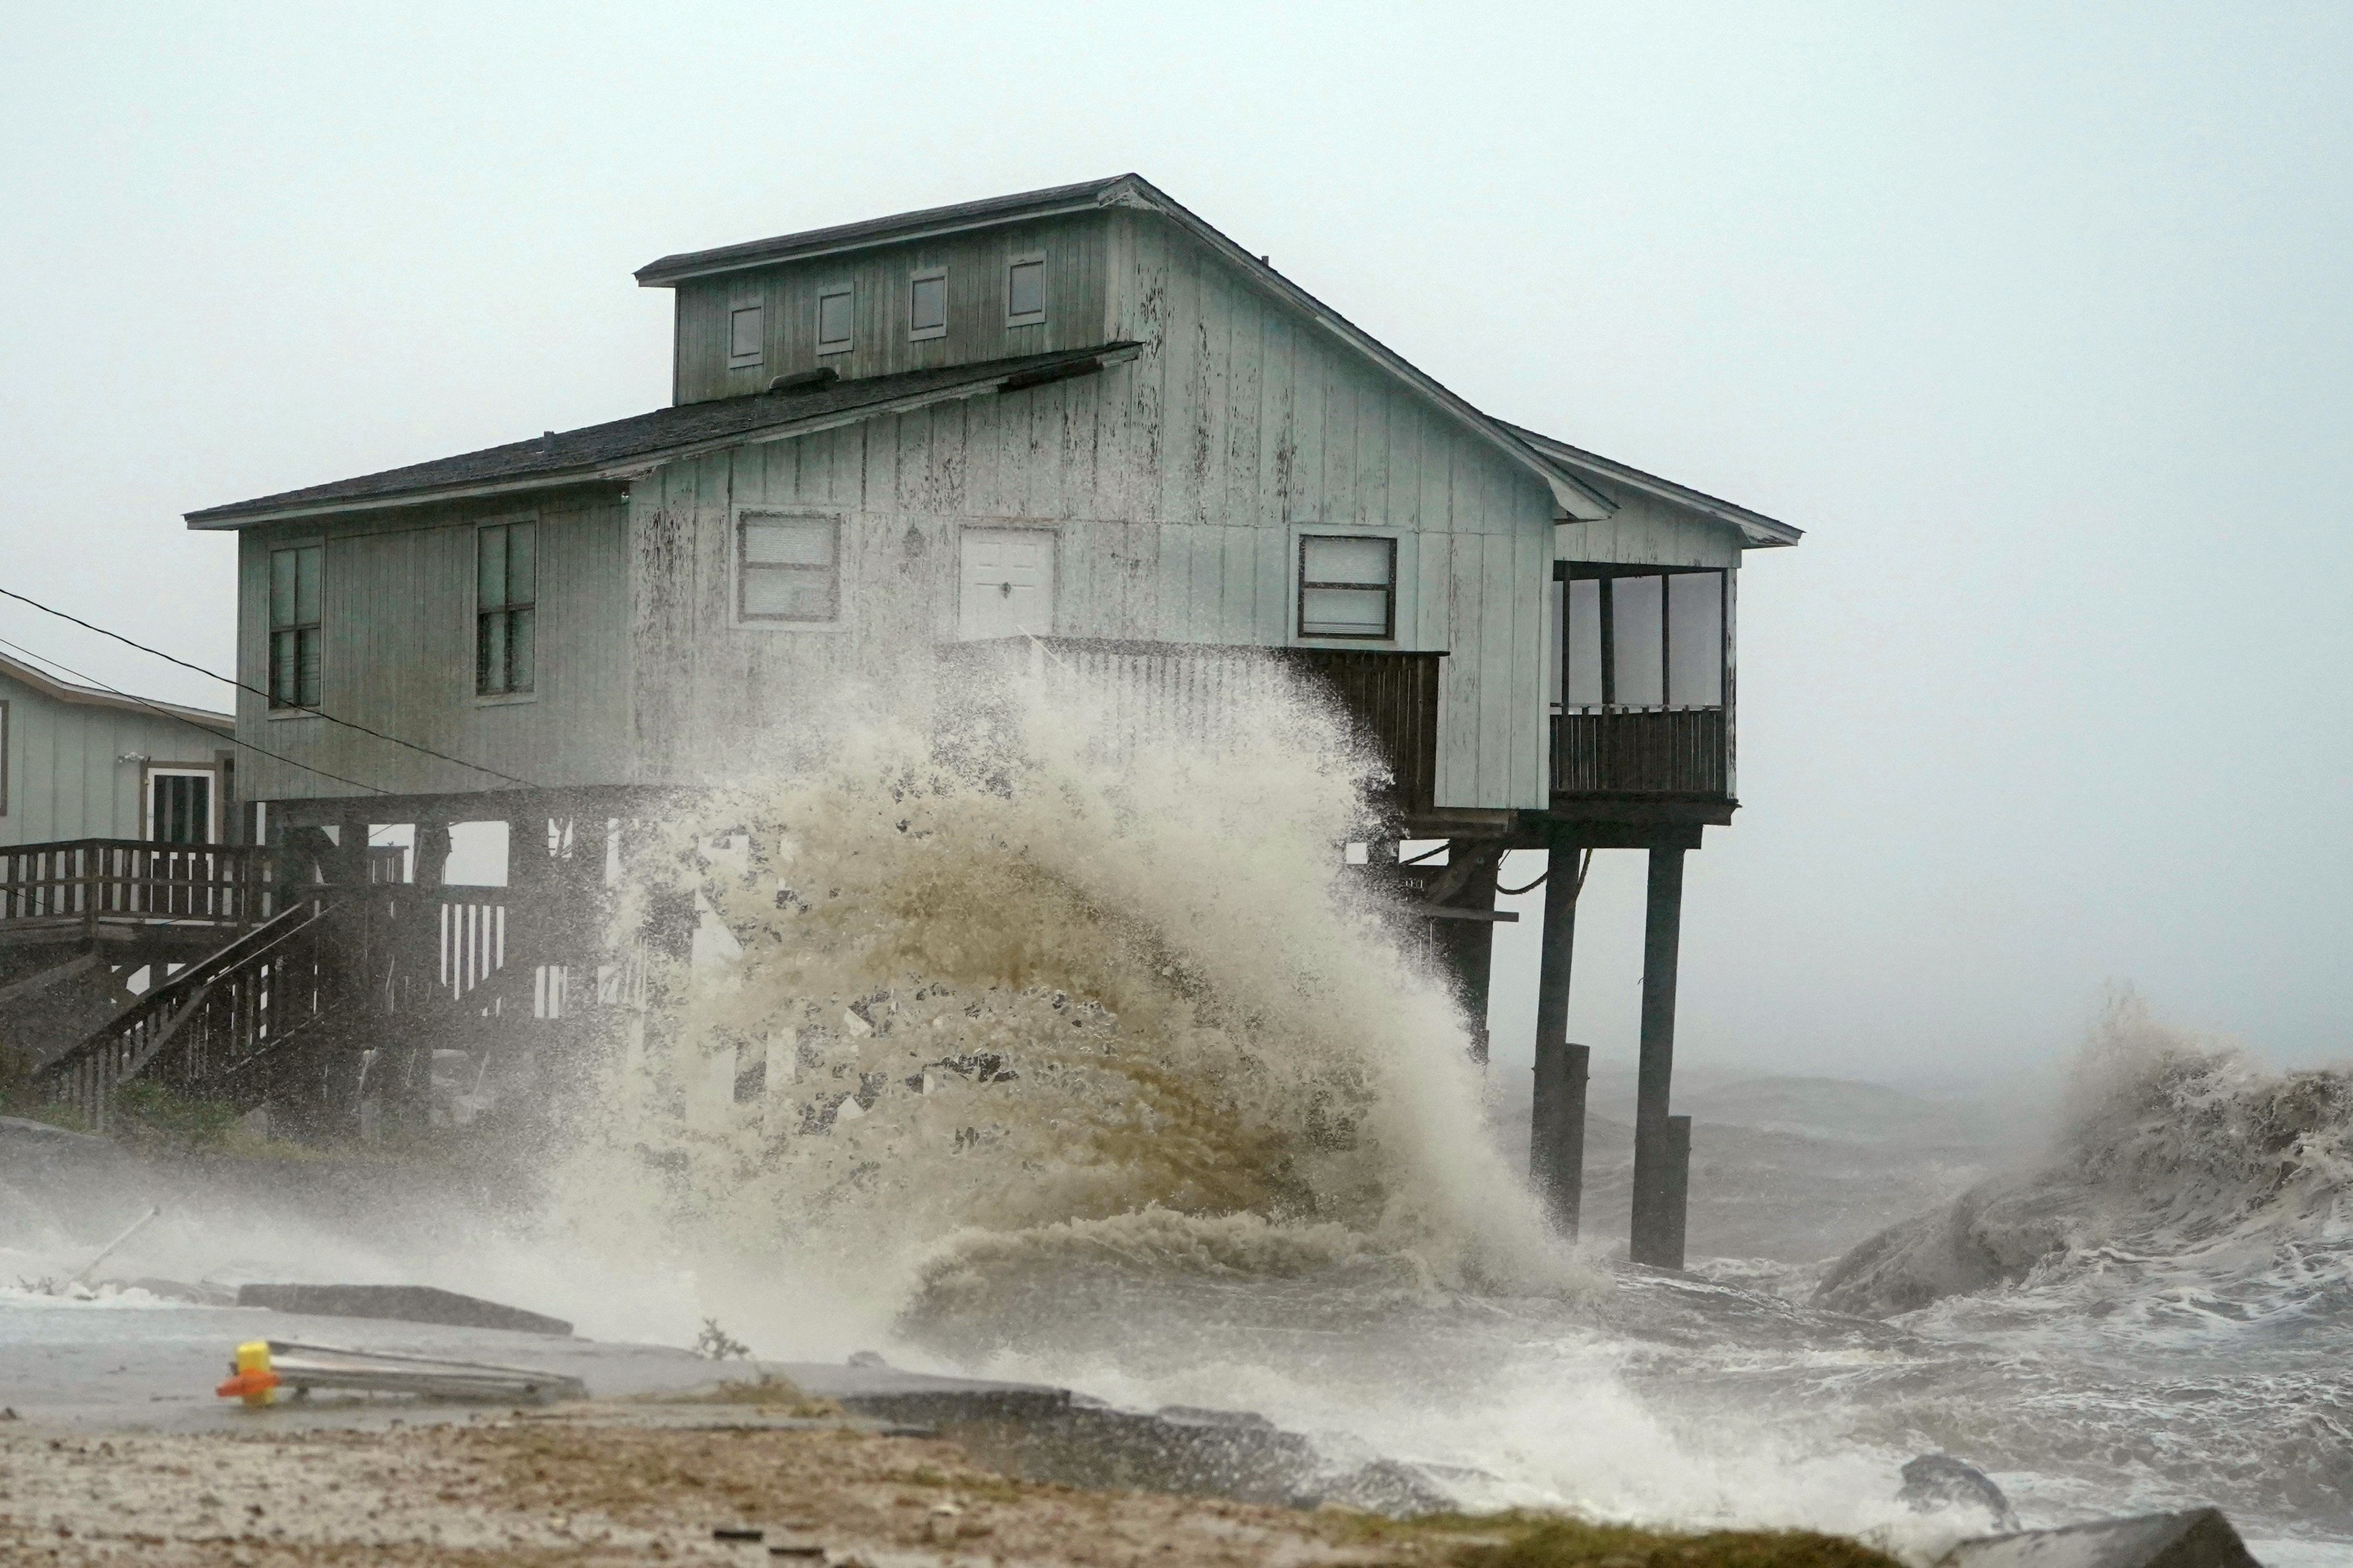 Hurricane Michael Photos Show 'Monstrous' Storm Surge Pummeling Florida Panhandle